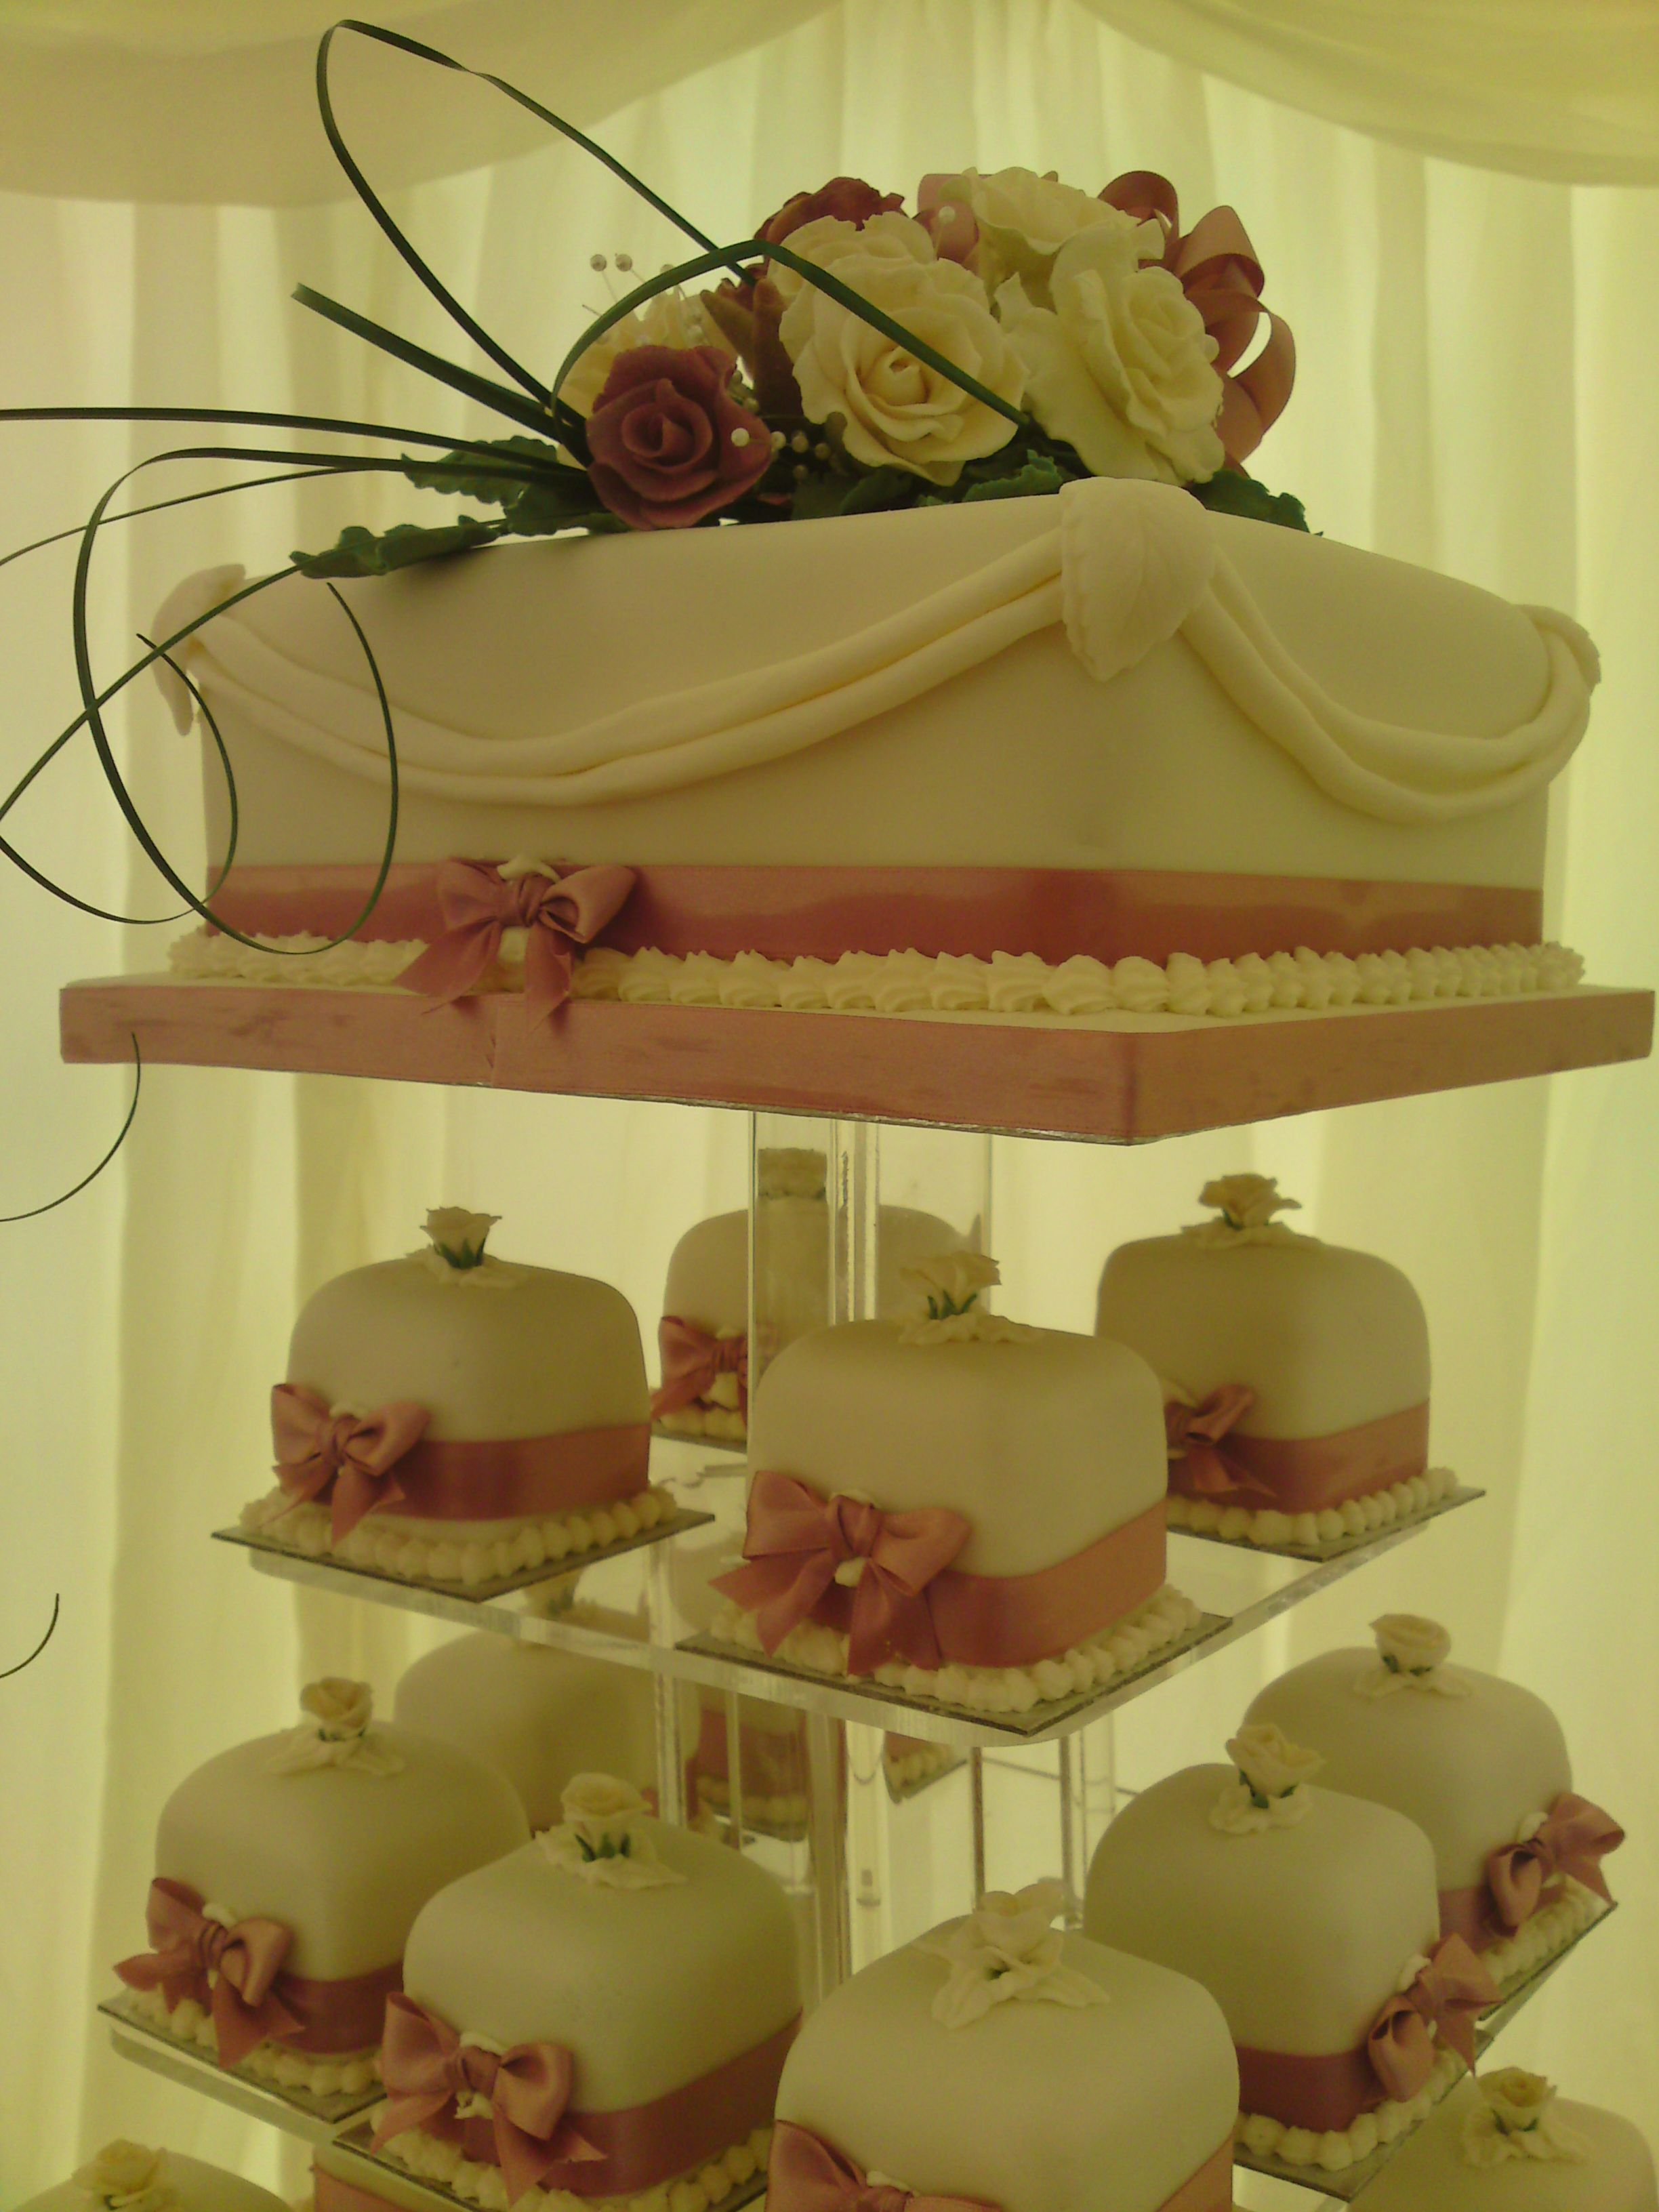 Close up of a typical top cake for the Mini Wedding Cake tower d ...